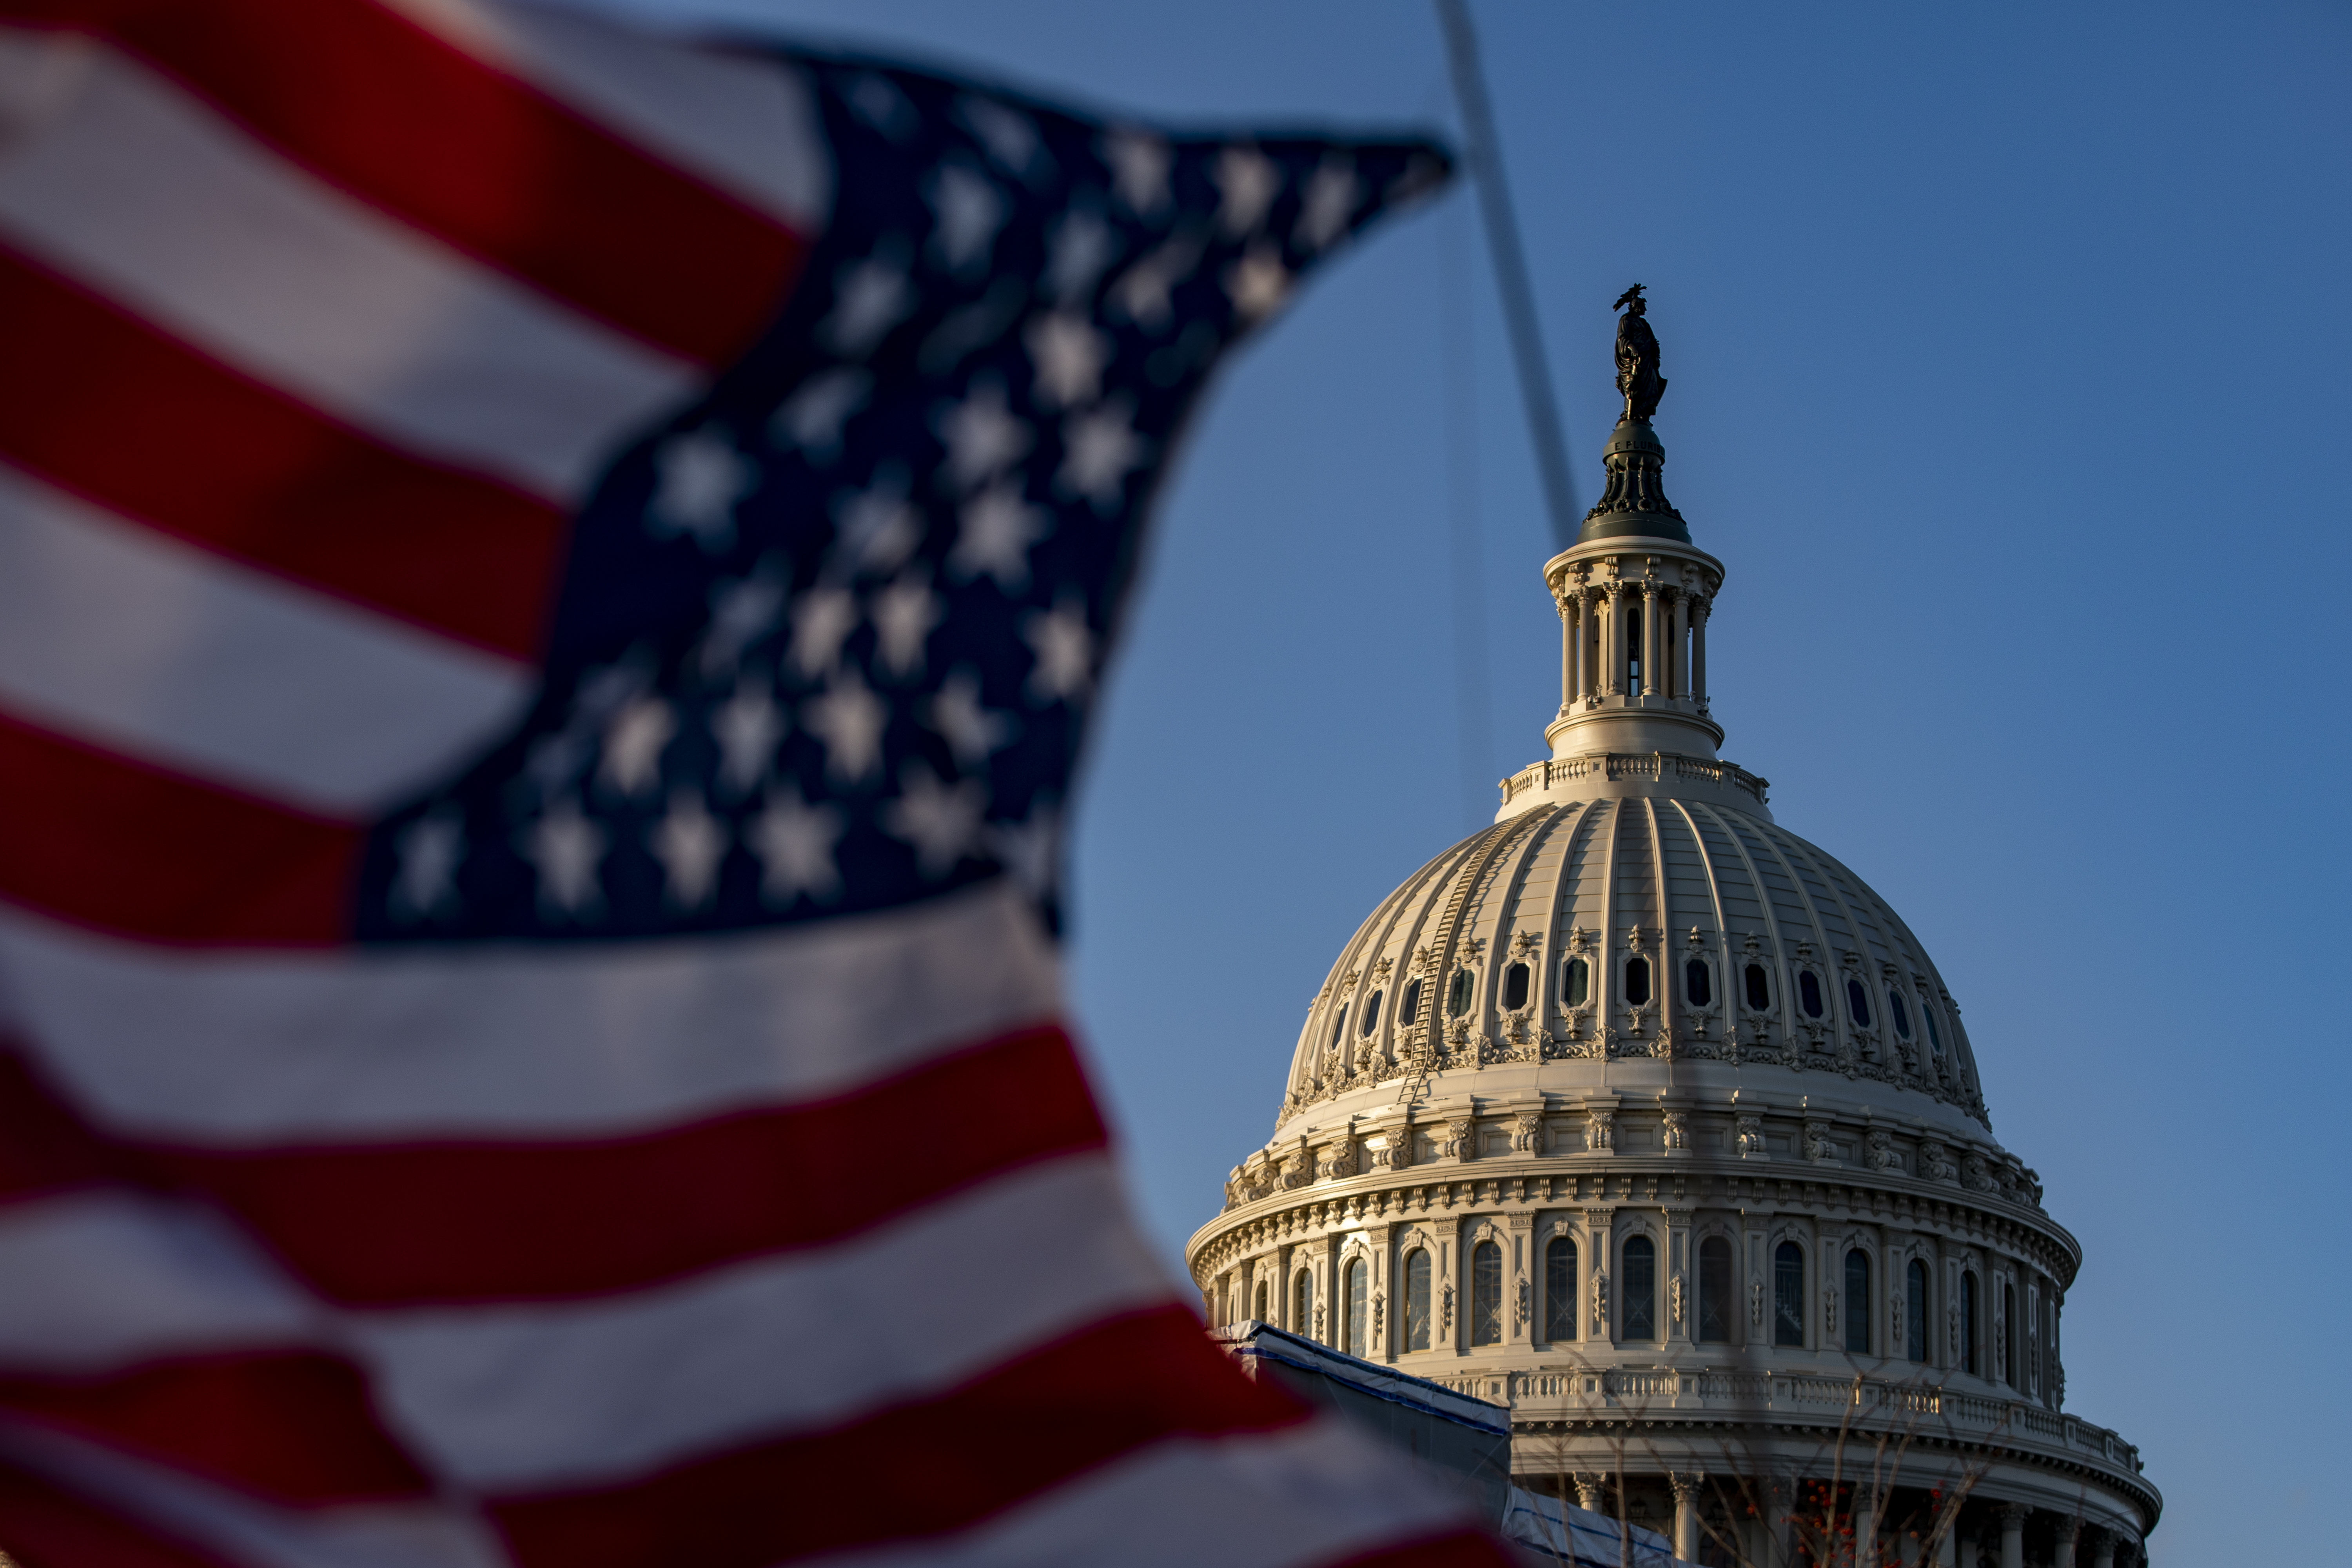 An American flag waves with the Capitol Building in the background.